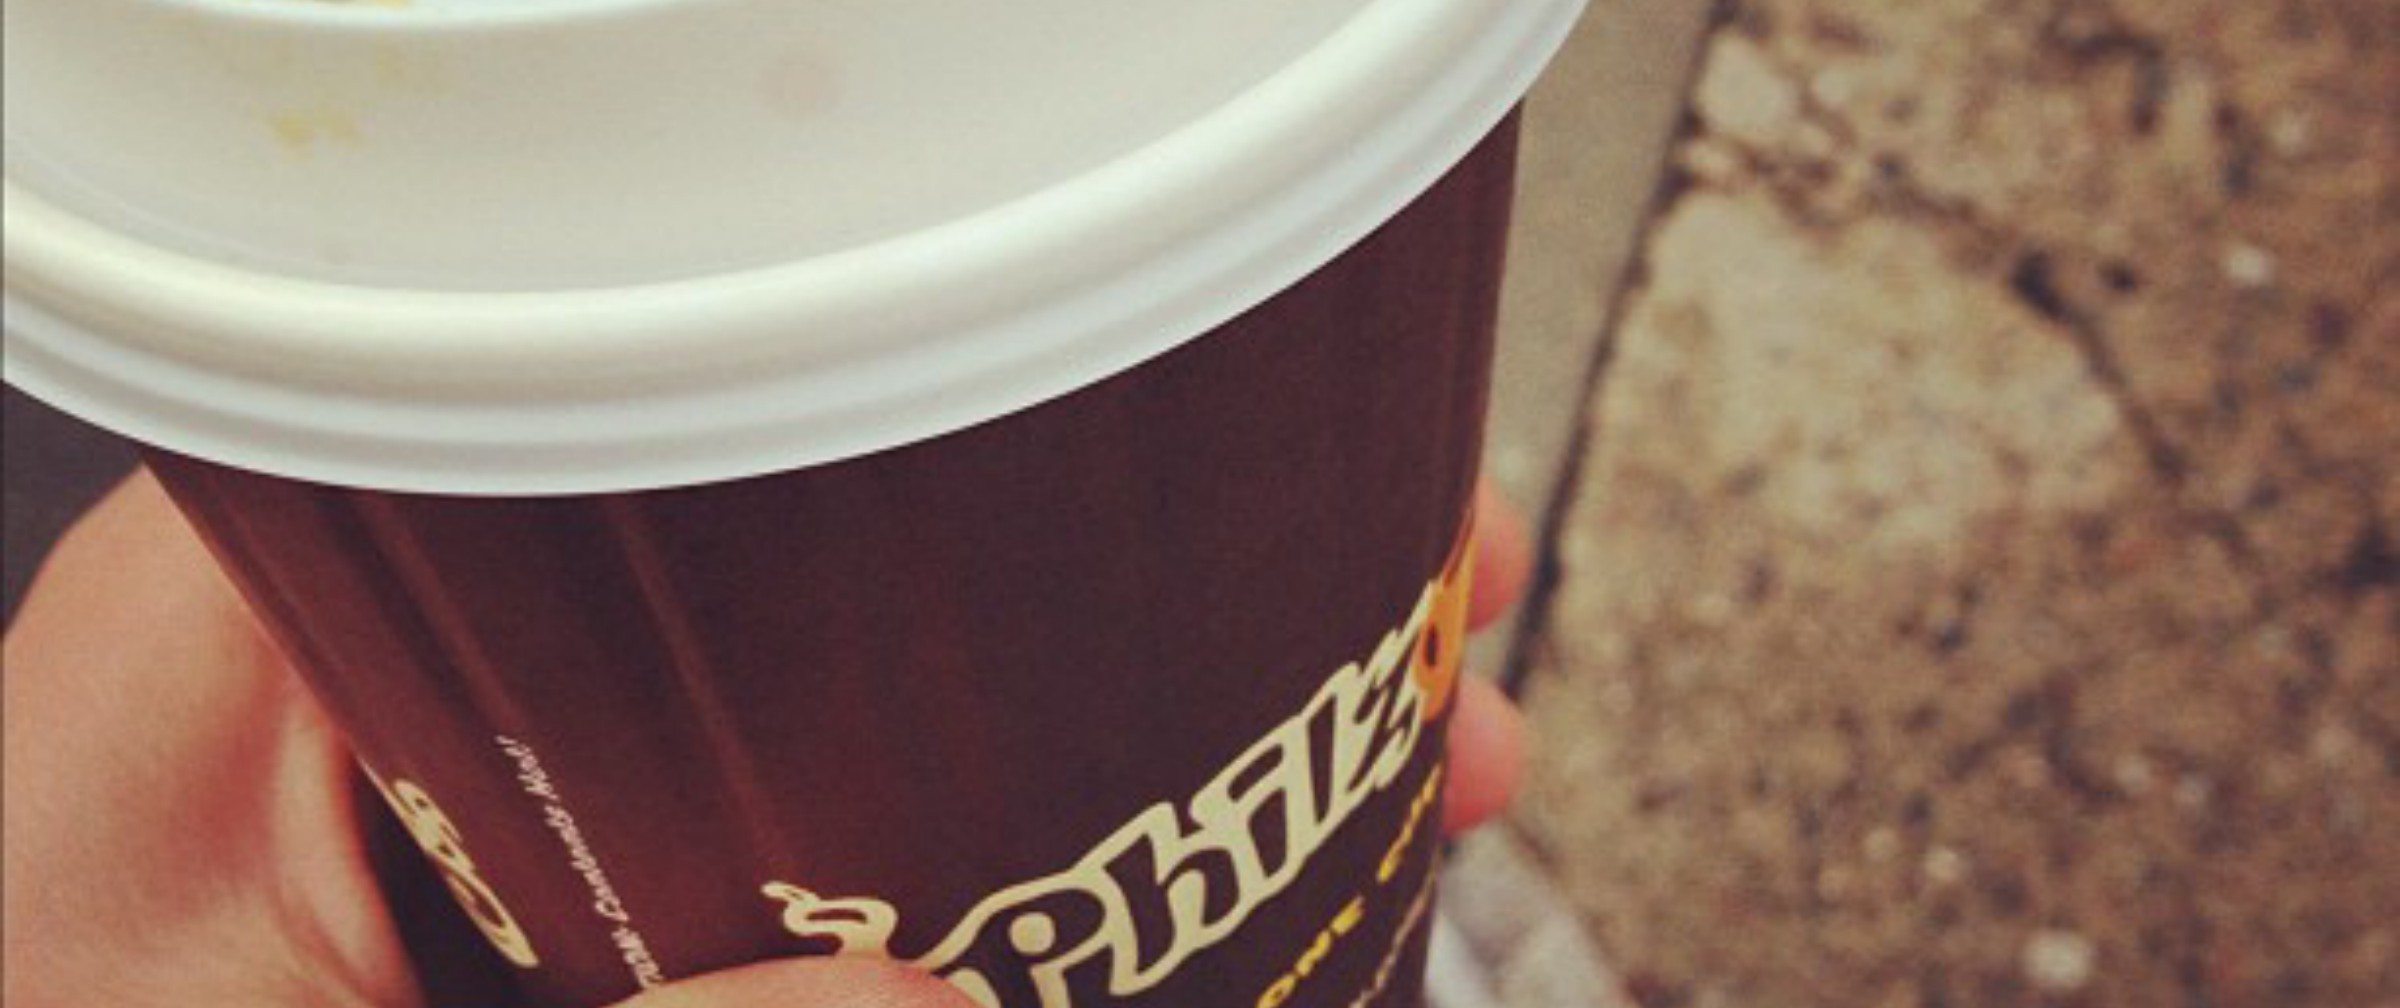 What Philz Coffee Can Teach Us About Product Design